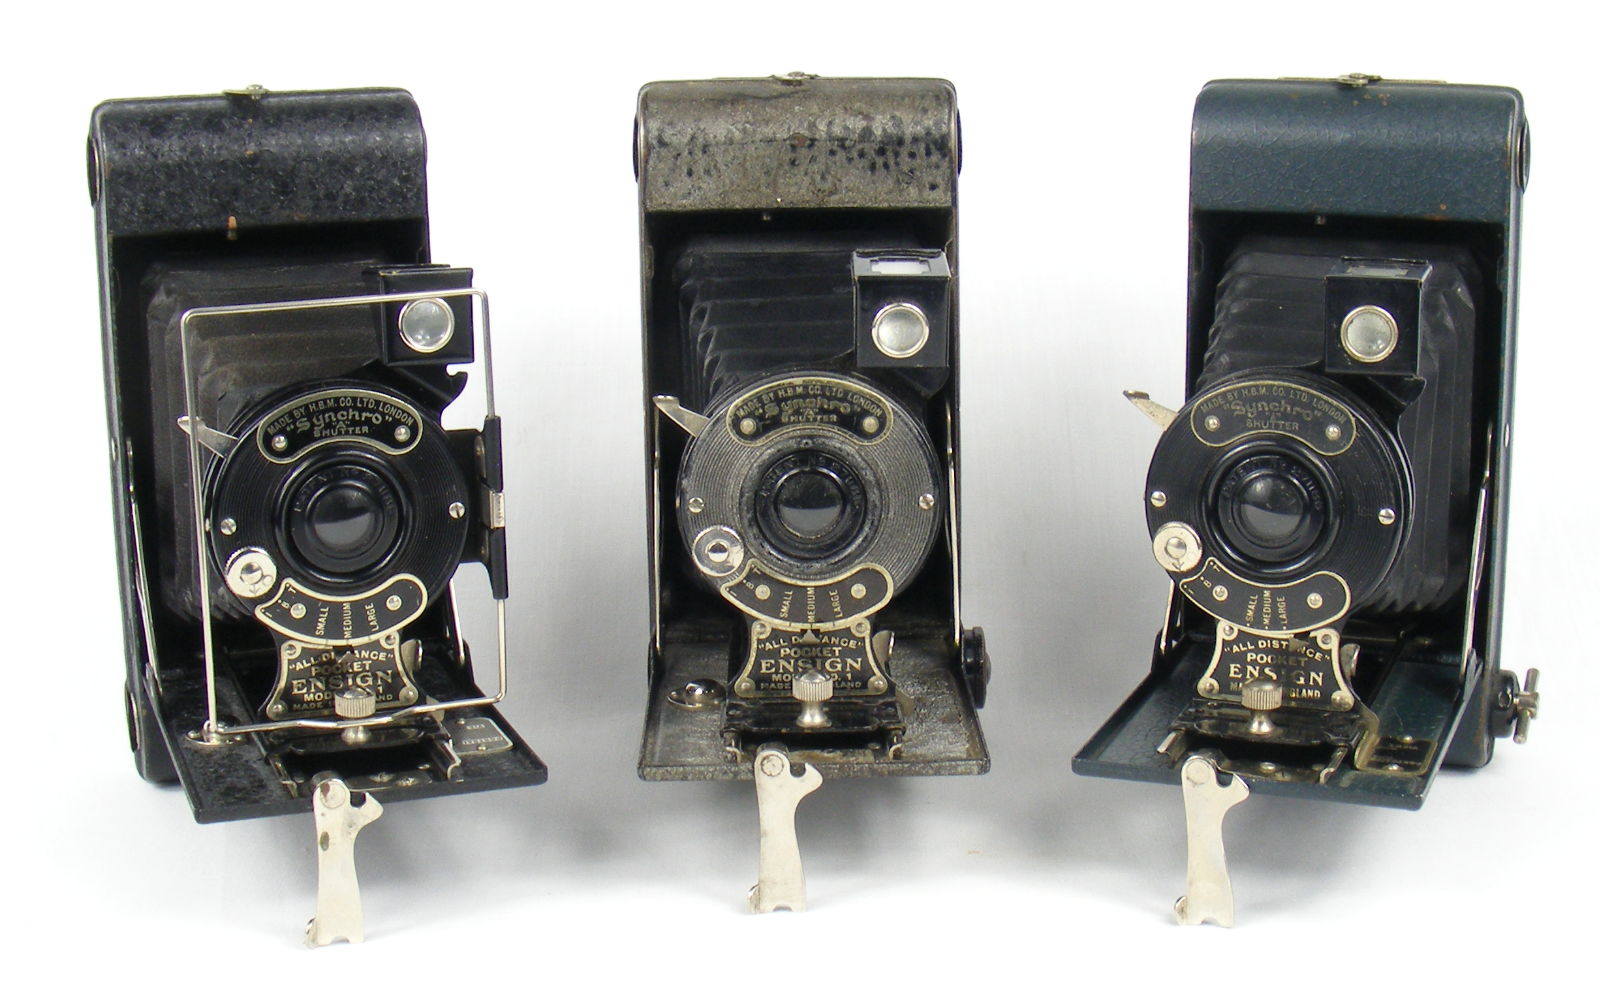 Image of All Distance Pocket Ensign Folding Camera (blue, silver/grey and black variants)